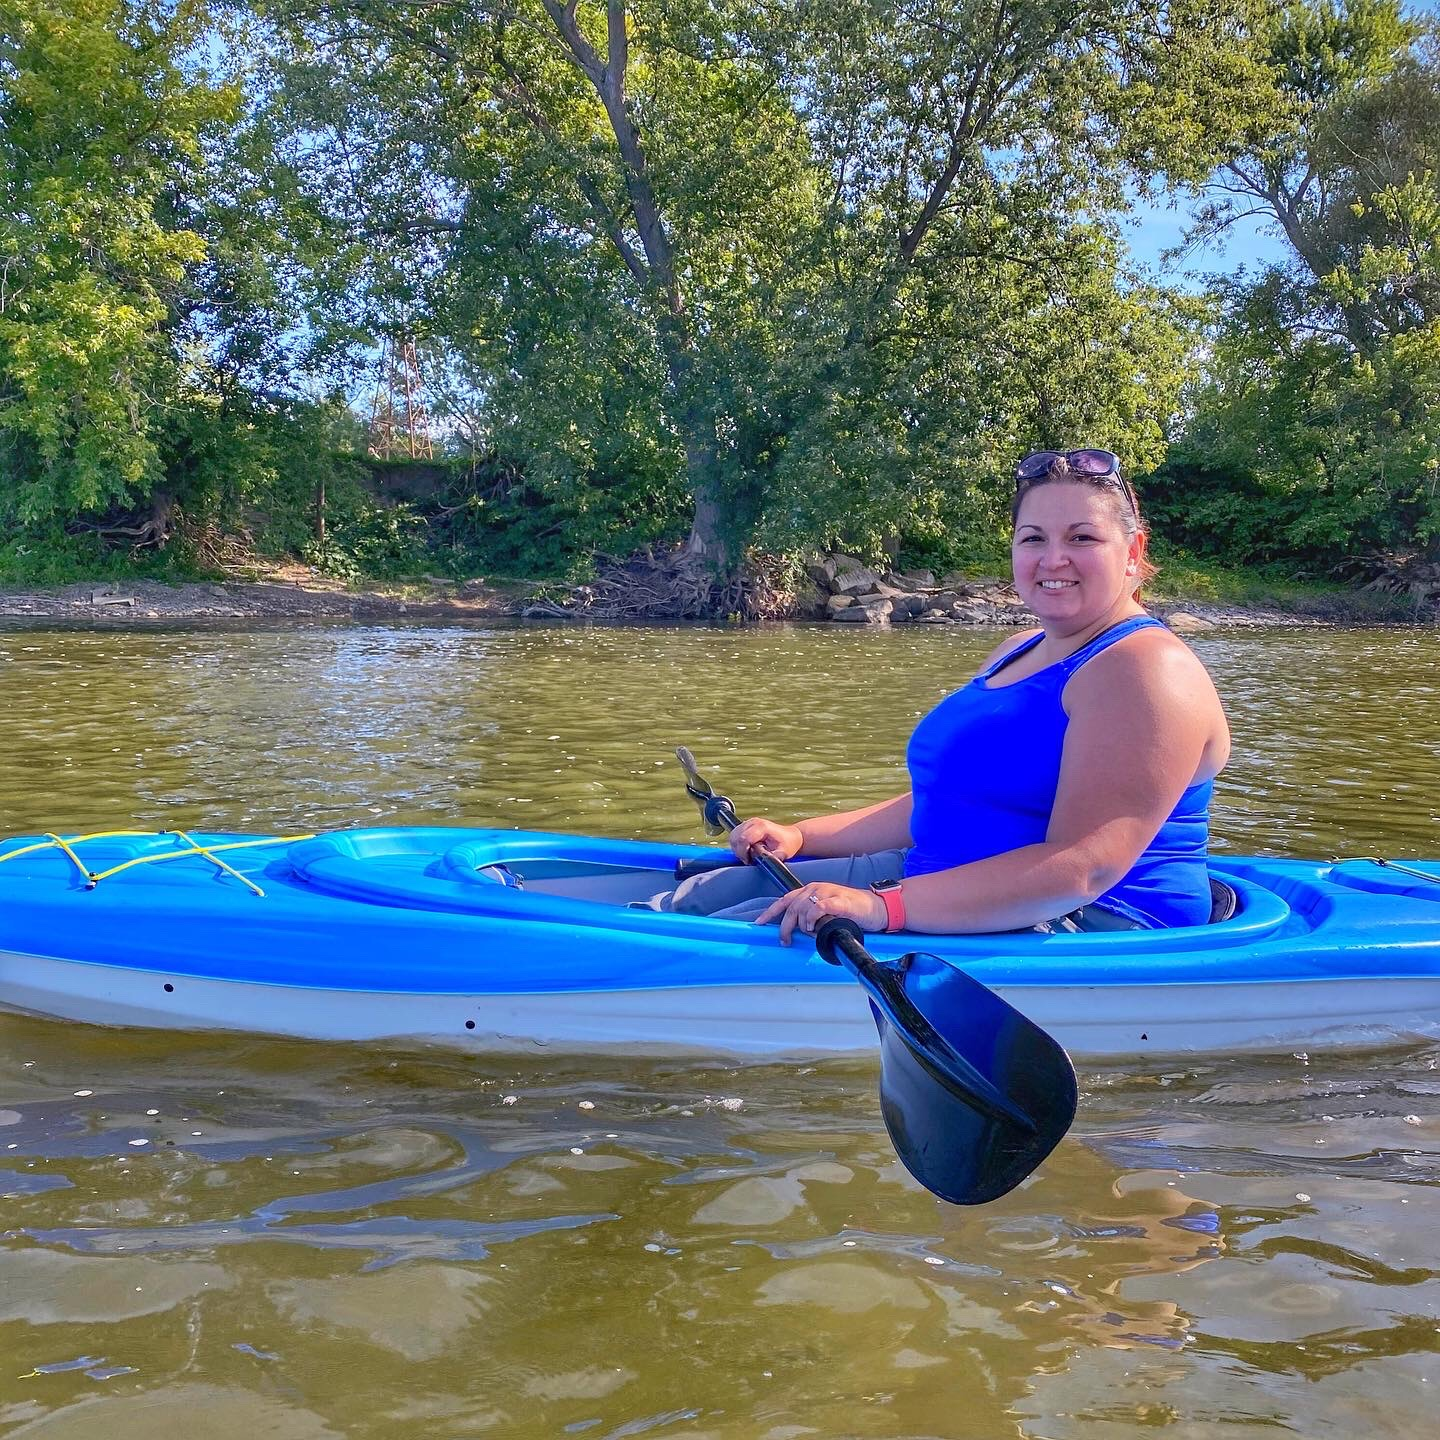 Dani Kayaking in Binghamton